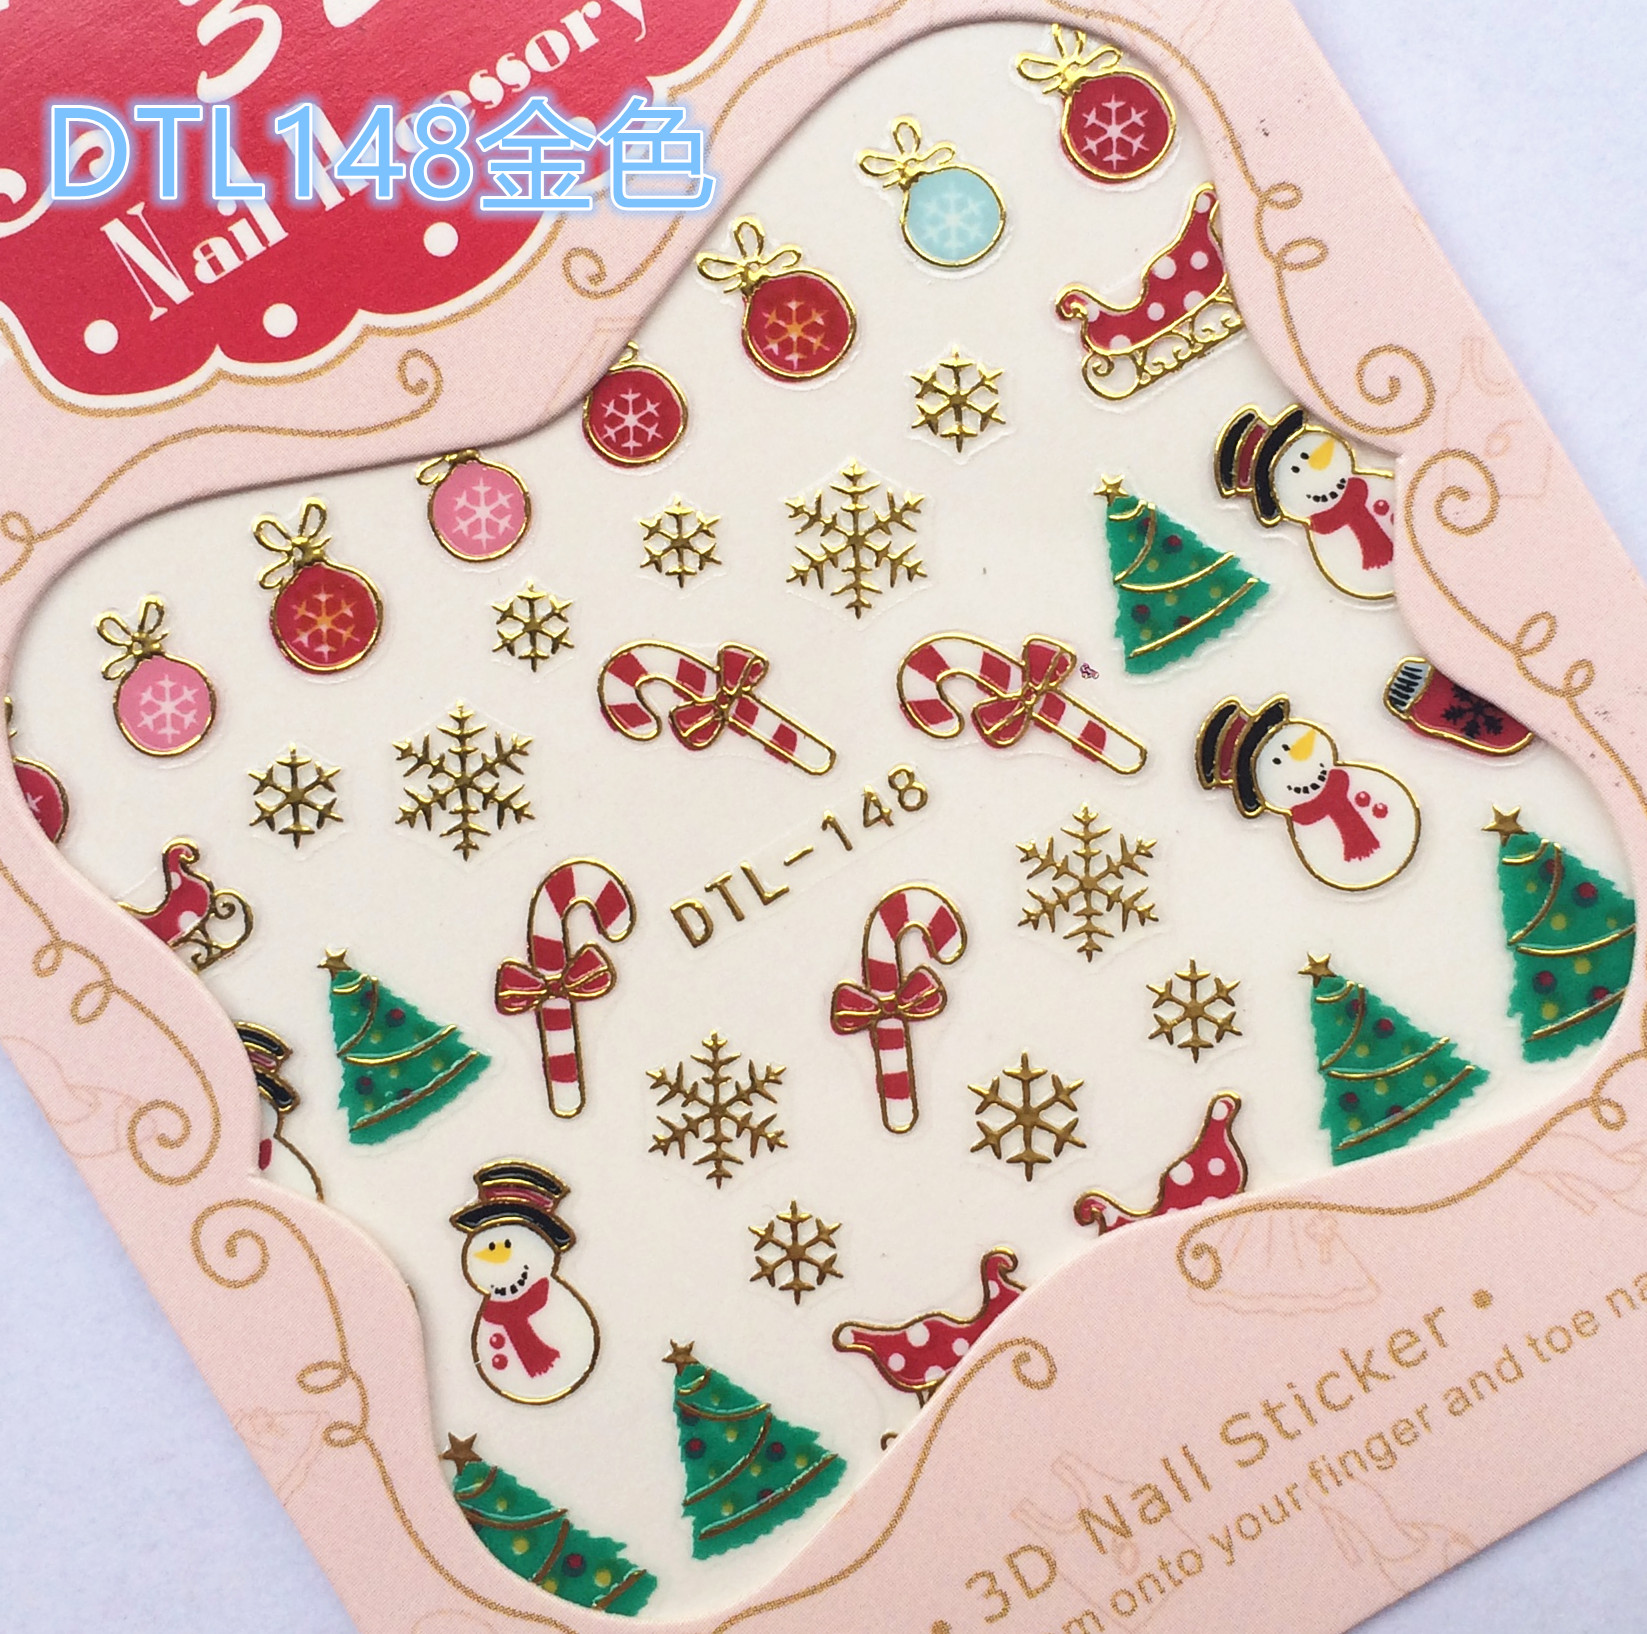 New 2017 Water Transfer Nails Art Sticker Merry Christmas 3D Golden Elements Nail Wrap Sticker Tips Manicura stickers for Nails<br><br>Aliexpress